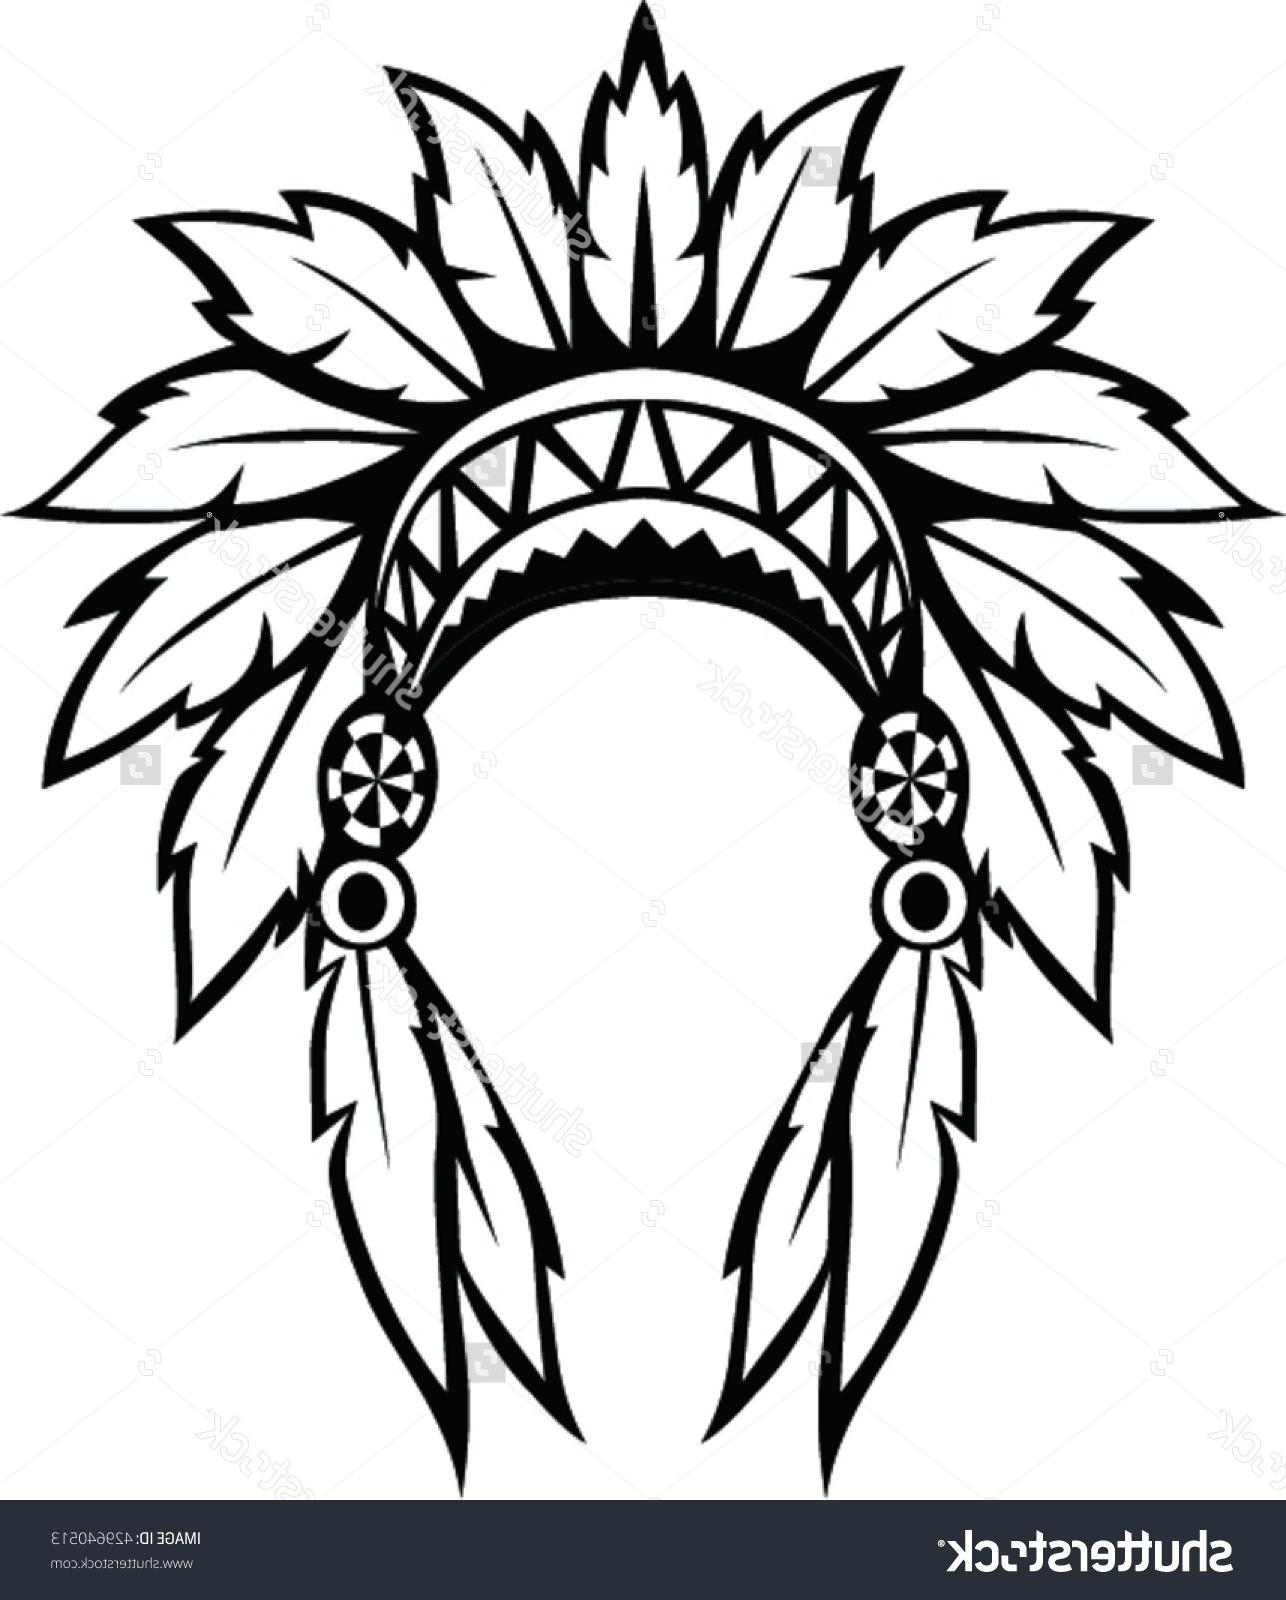 Indian Headdress Sketch at PaintingValley.com.